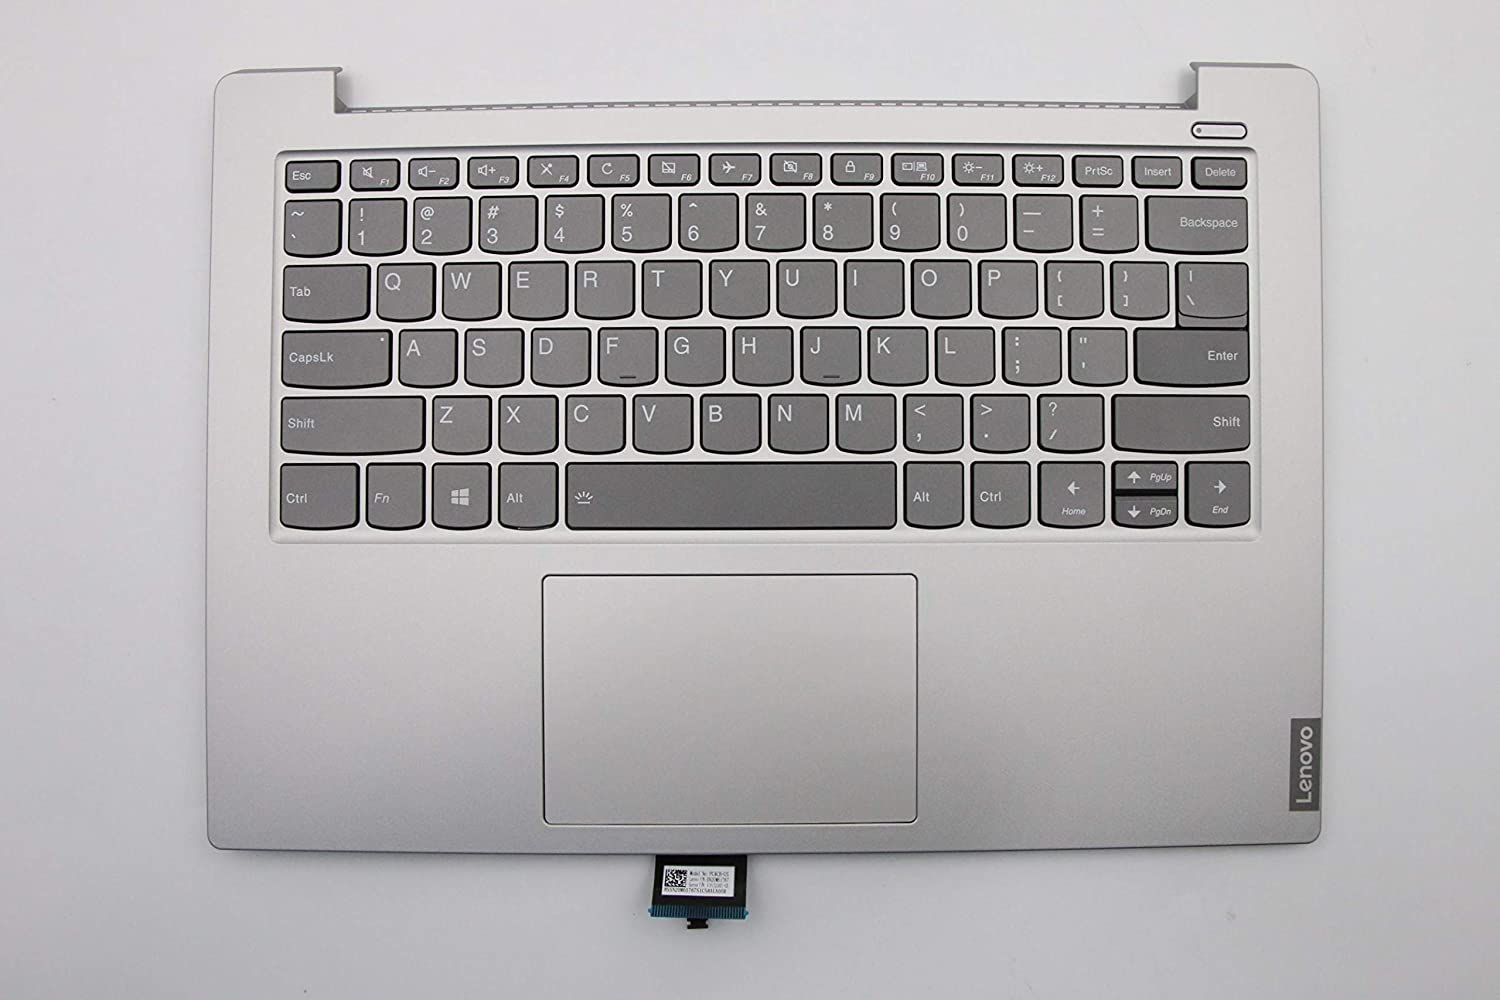 Comp XP New Genuine Palmrest for S340-14 Palmres Touchpad Series Max 49% OFF Purchase